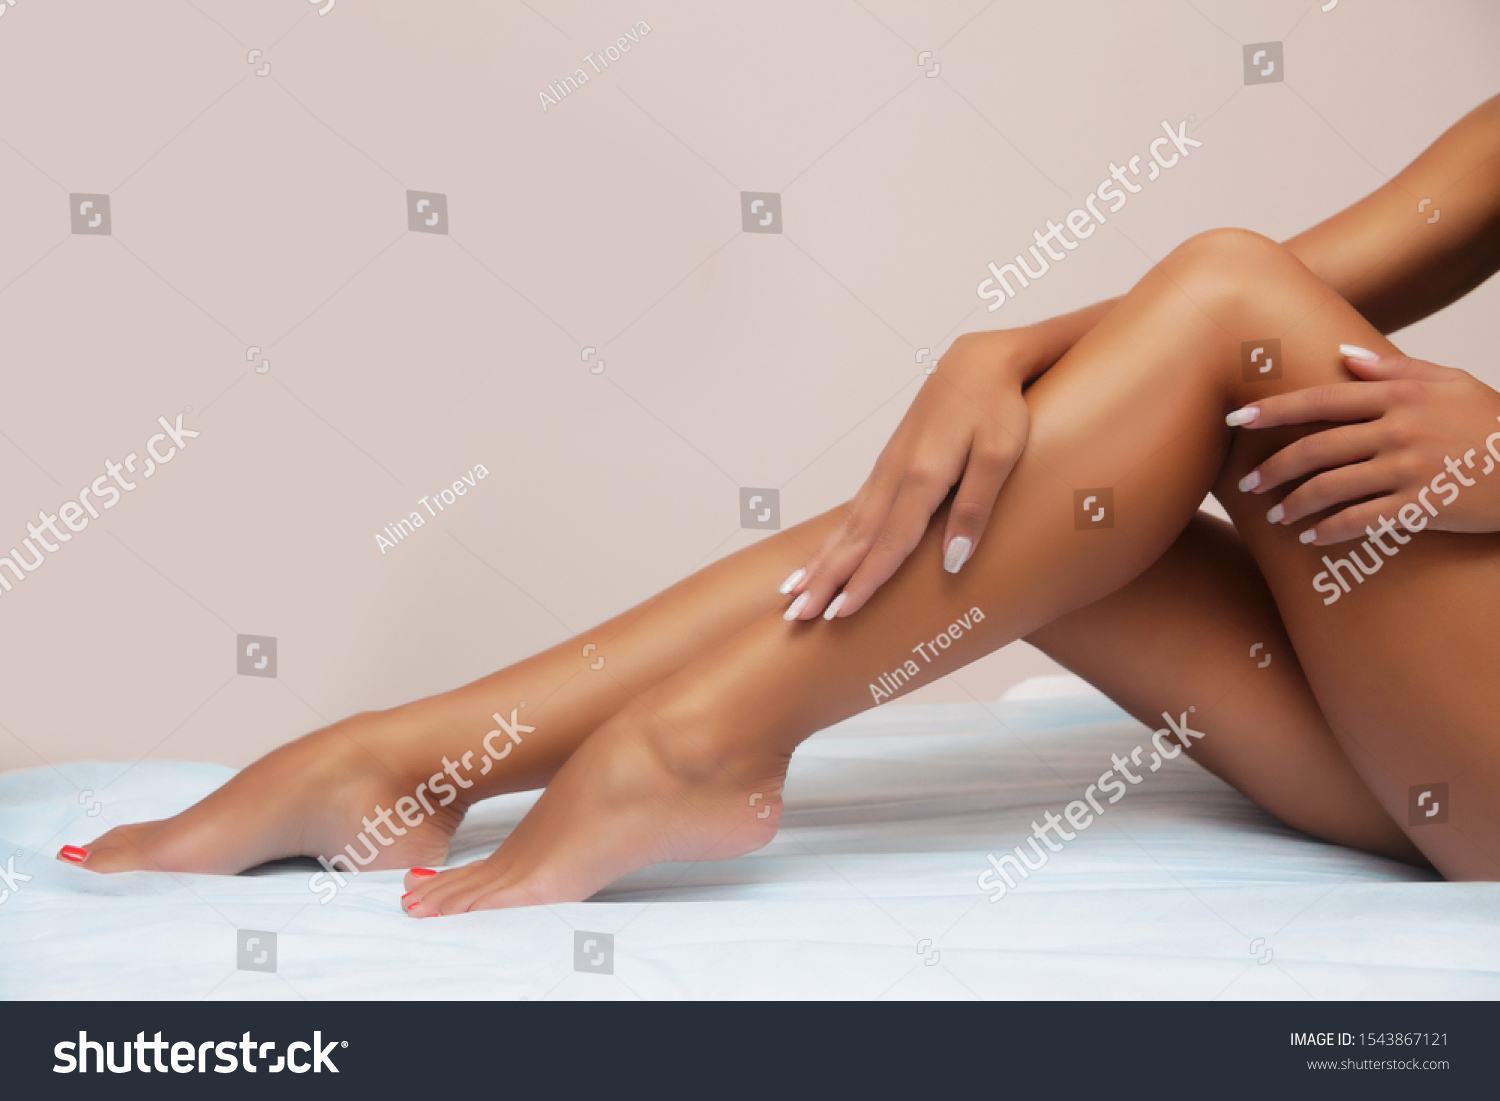 Woman body care. Close up of long female tanned legs with perfect smooth soft skin, pedicure, healthy nails on white background. Epilation, beauty and health concept  #1543867121